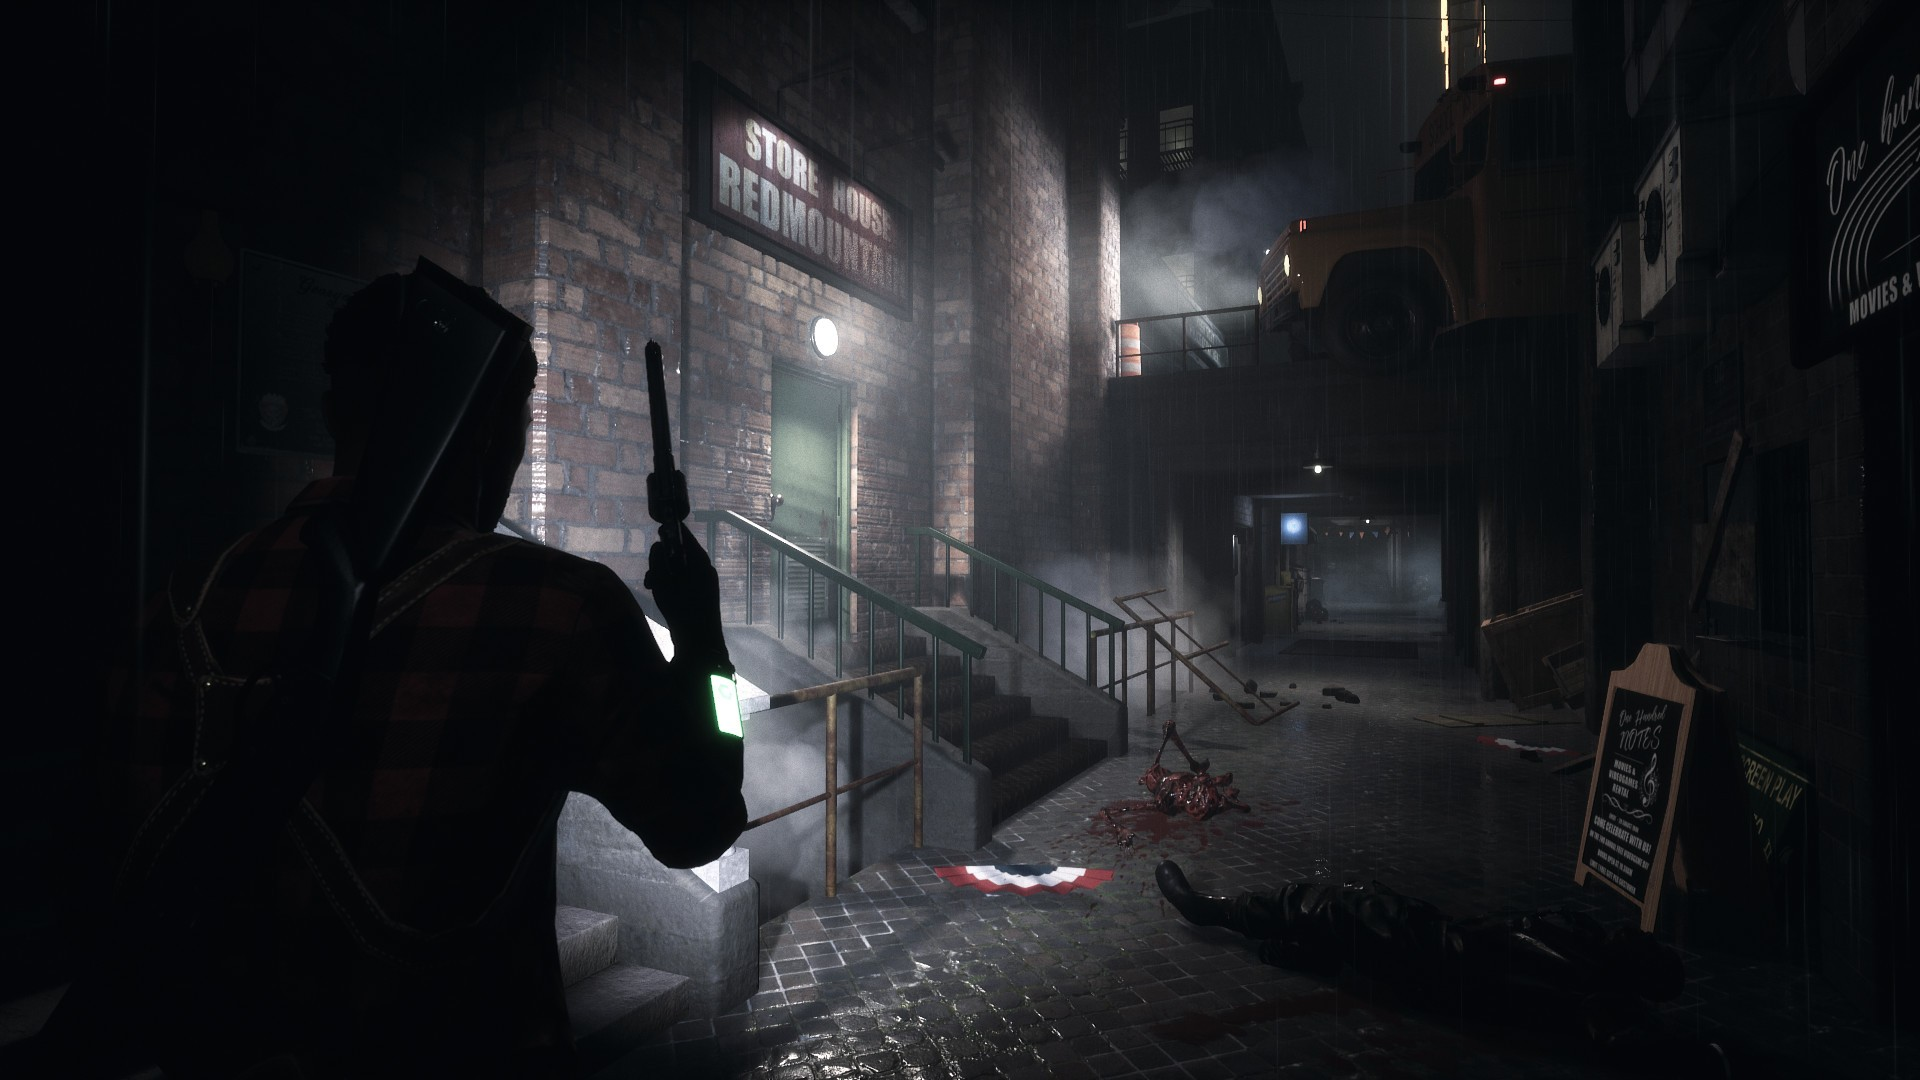 Action, Action & Adventure, adventure, All In Games, Destructive Creations, Horror, indie, Invader Studios, PC, PC Review, Rating 6/10, survival, Survival Horror